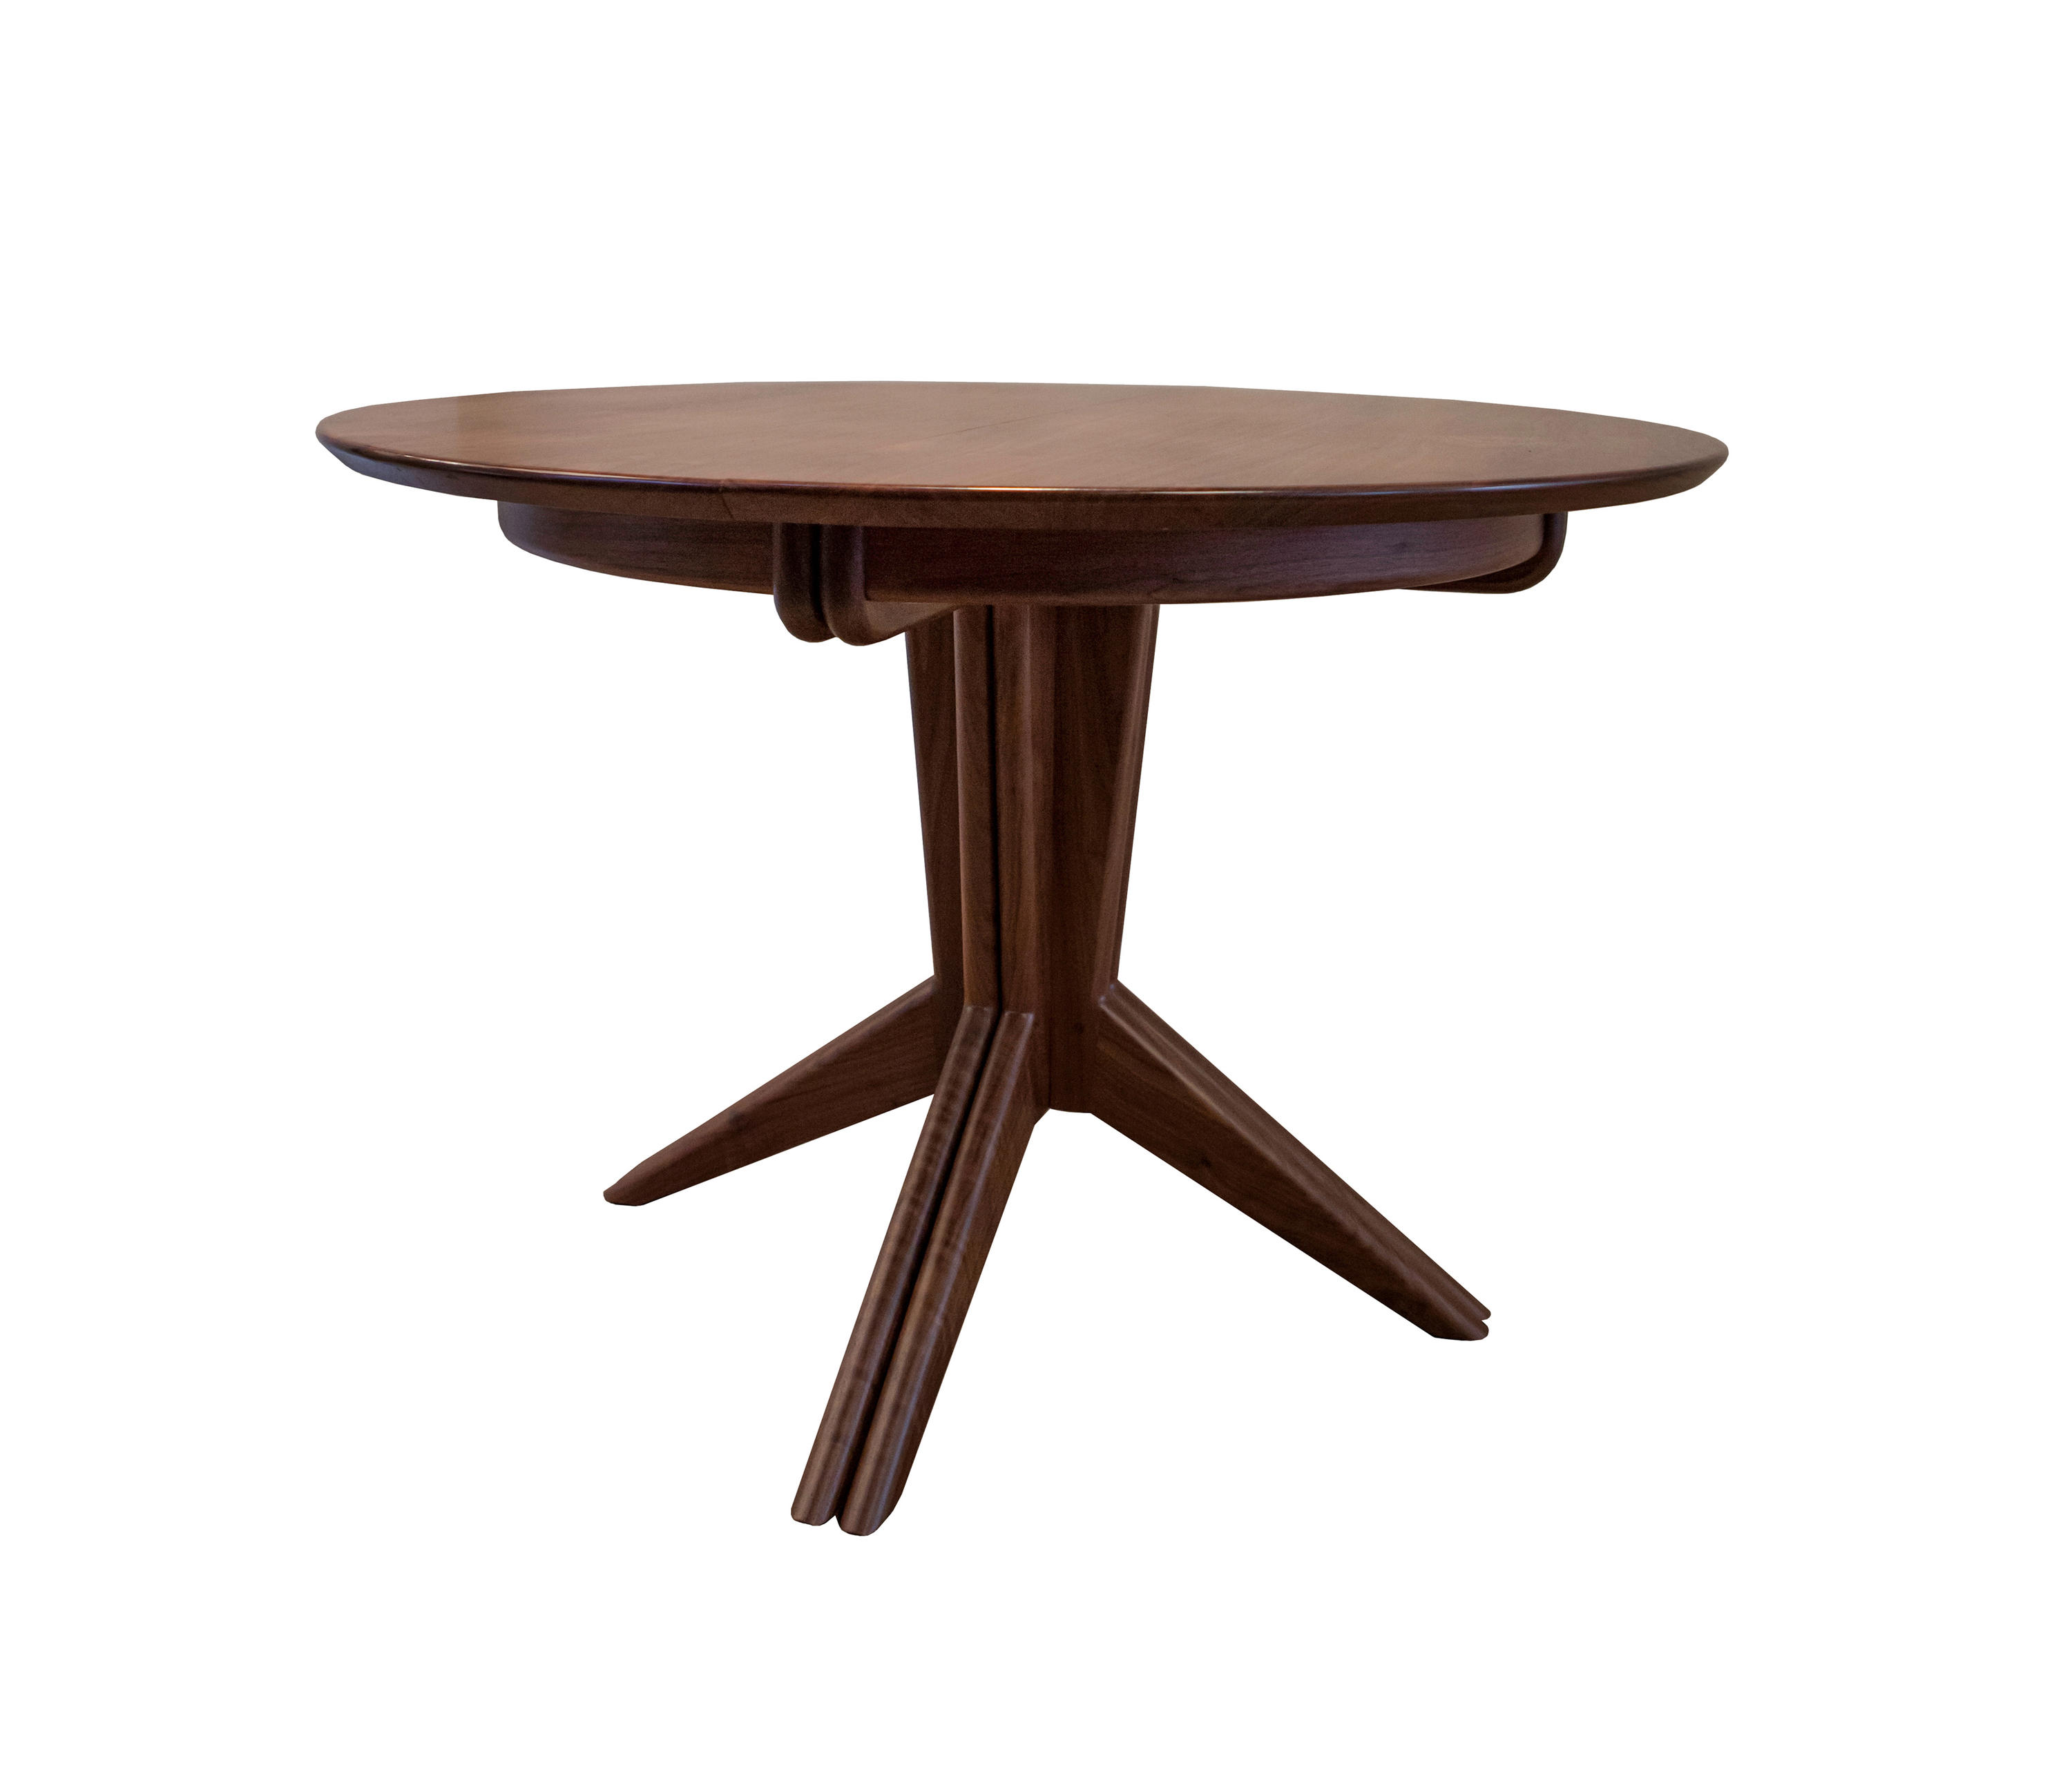 Pedestal extension dining table dining tables from smilow design architonic - Pedestal kitchen tables ...